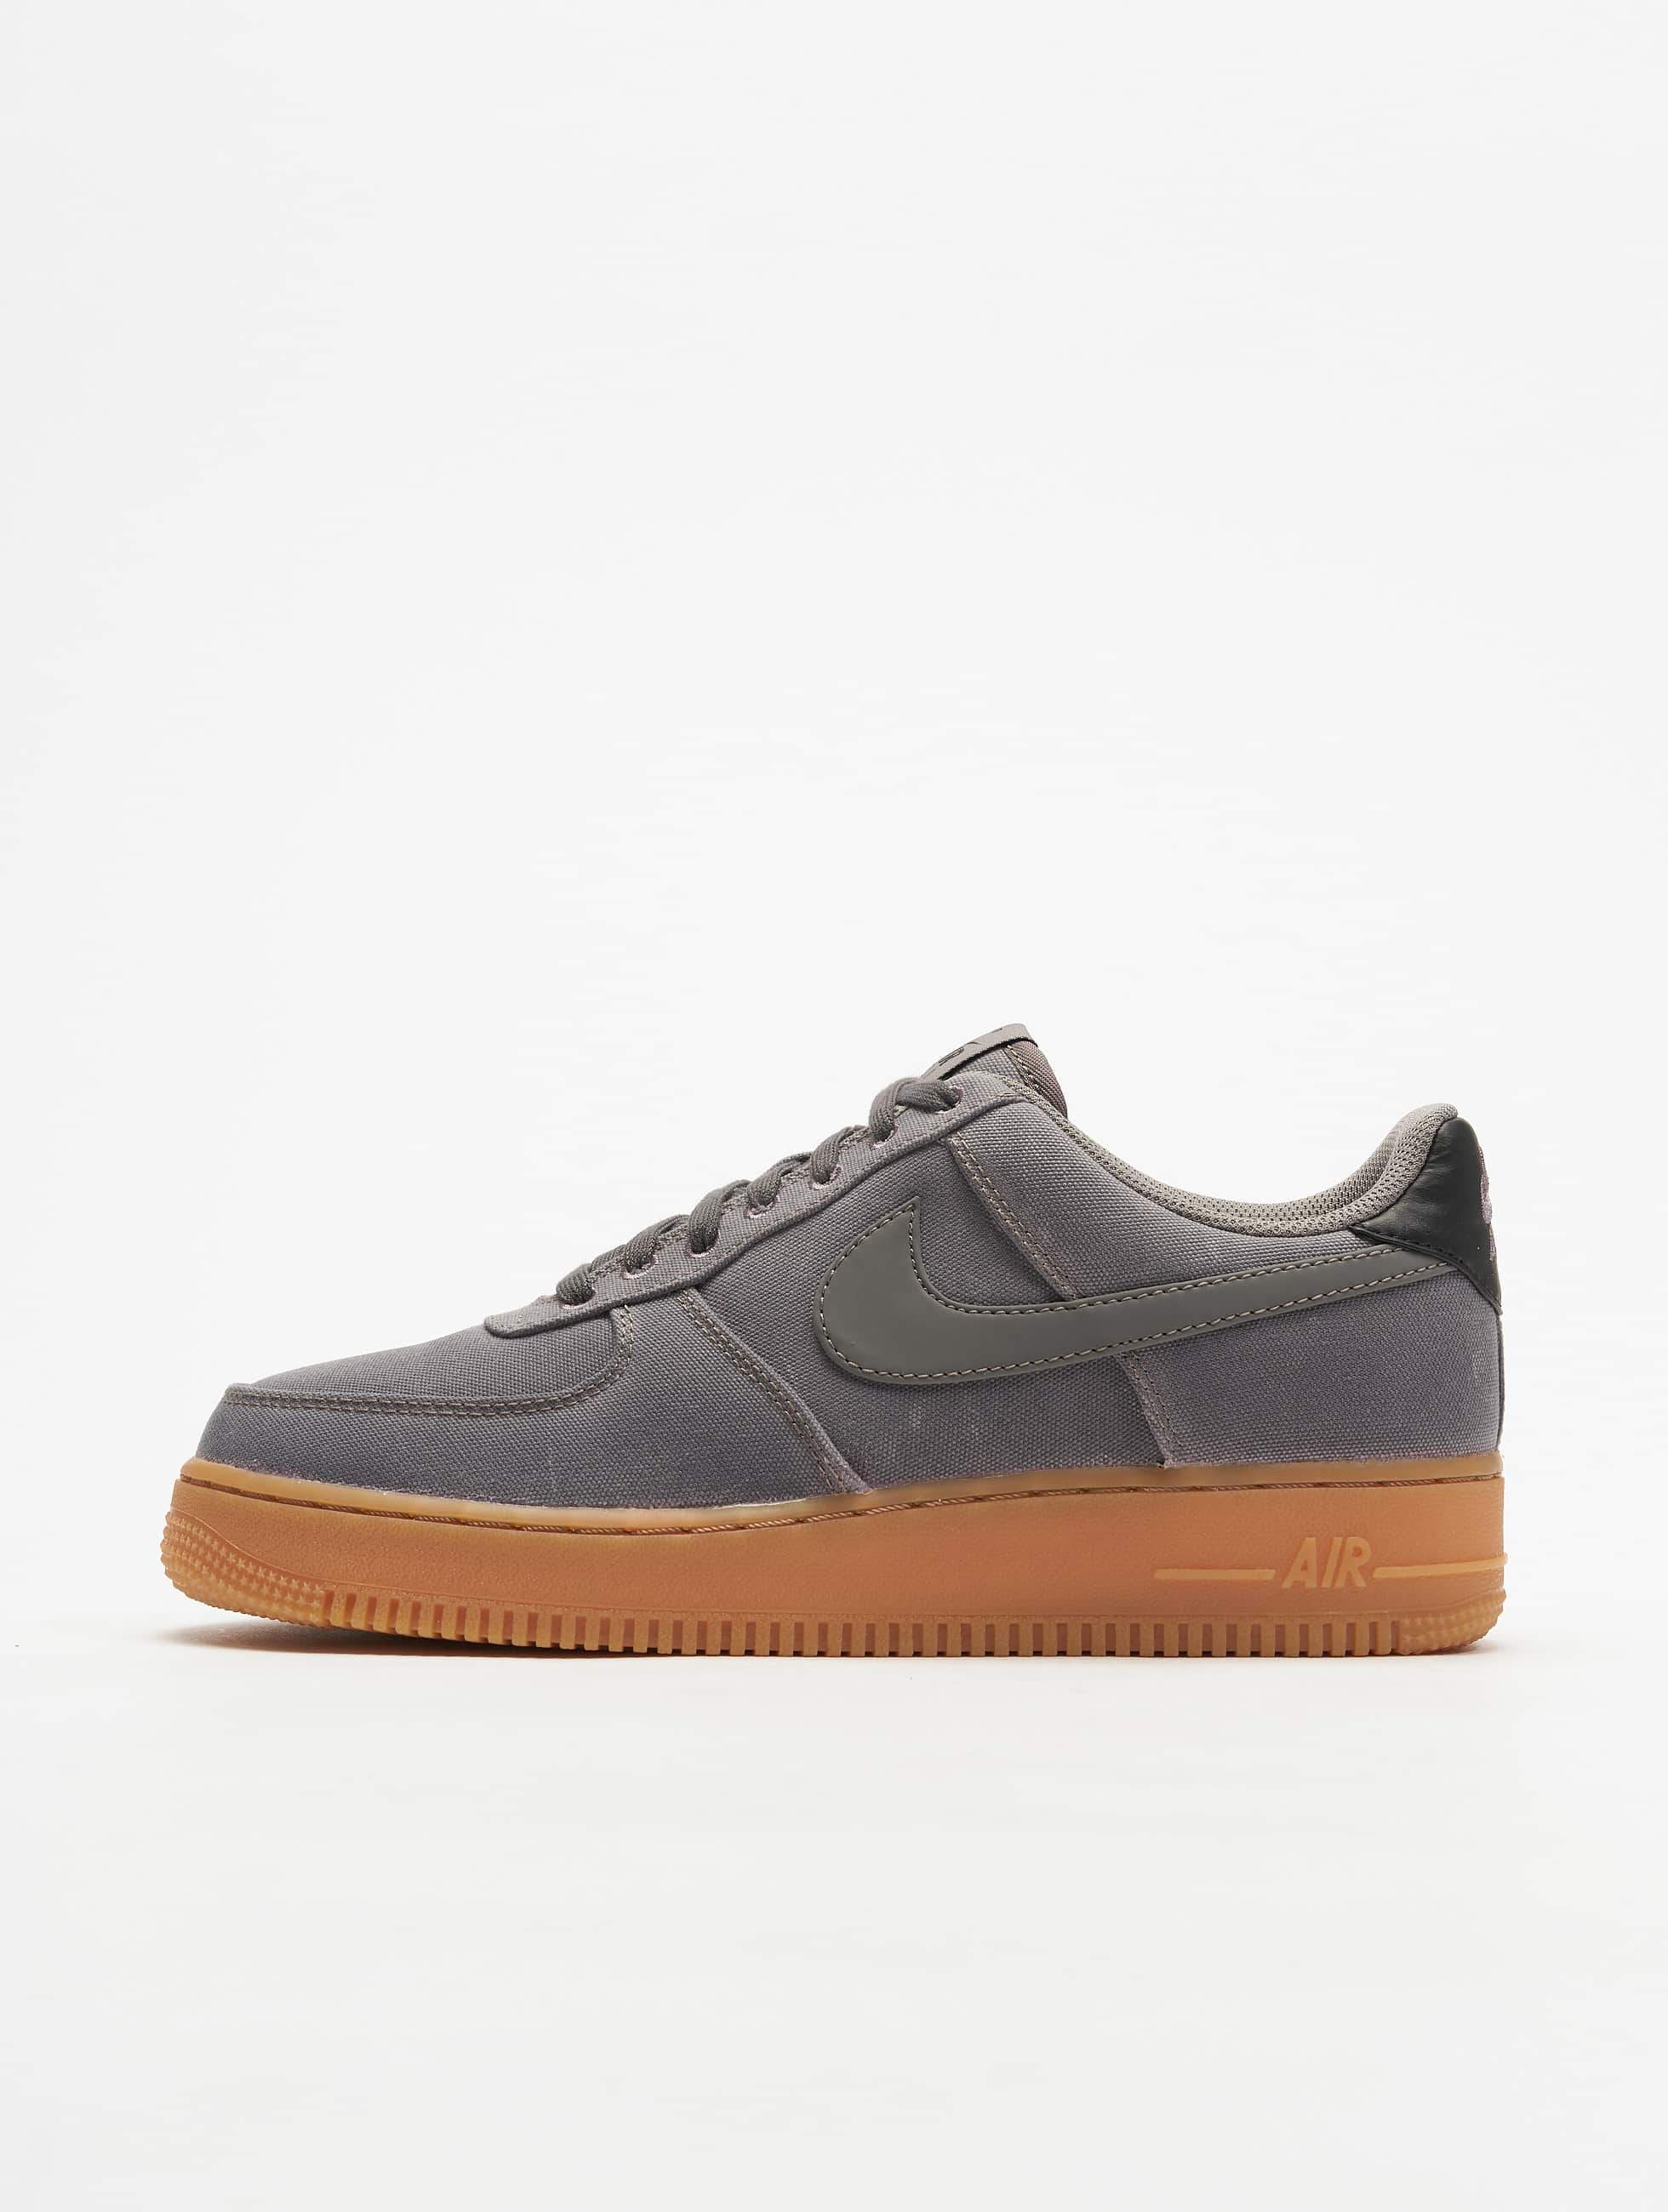 a9eee37500b Nike schoen / sneaker Air Force 1 07 LV8 Style in bont 538098